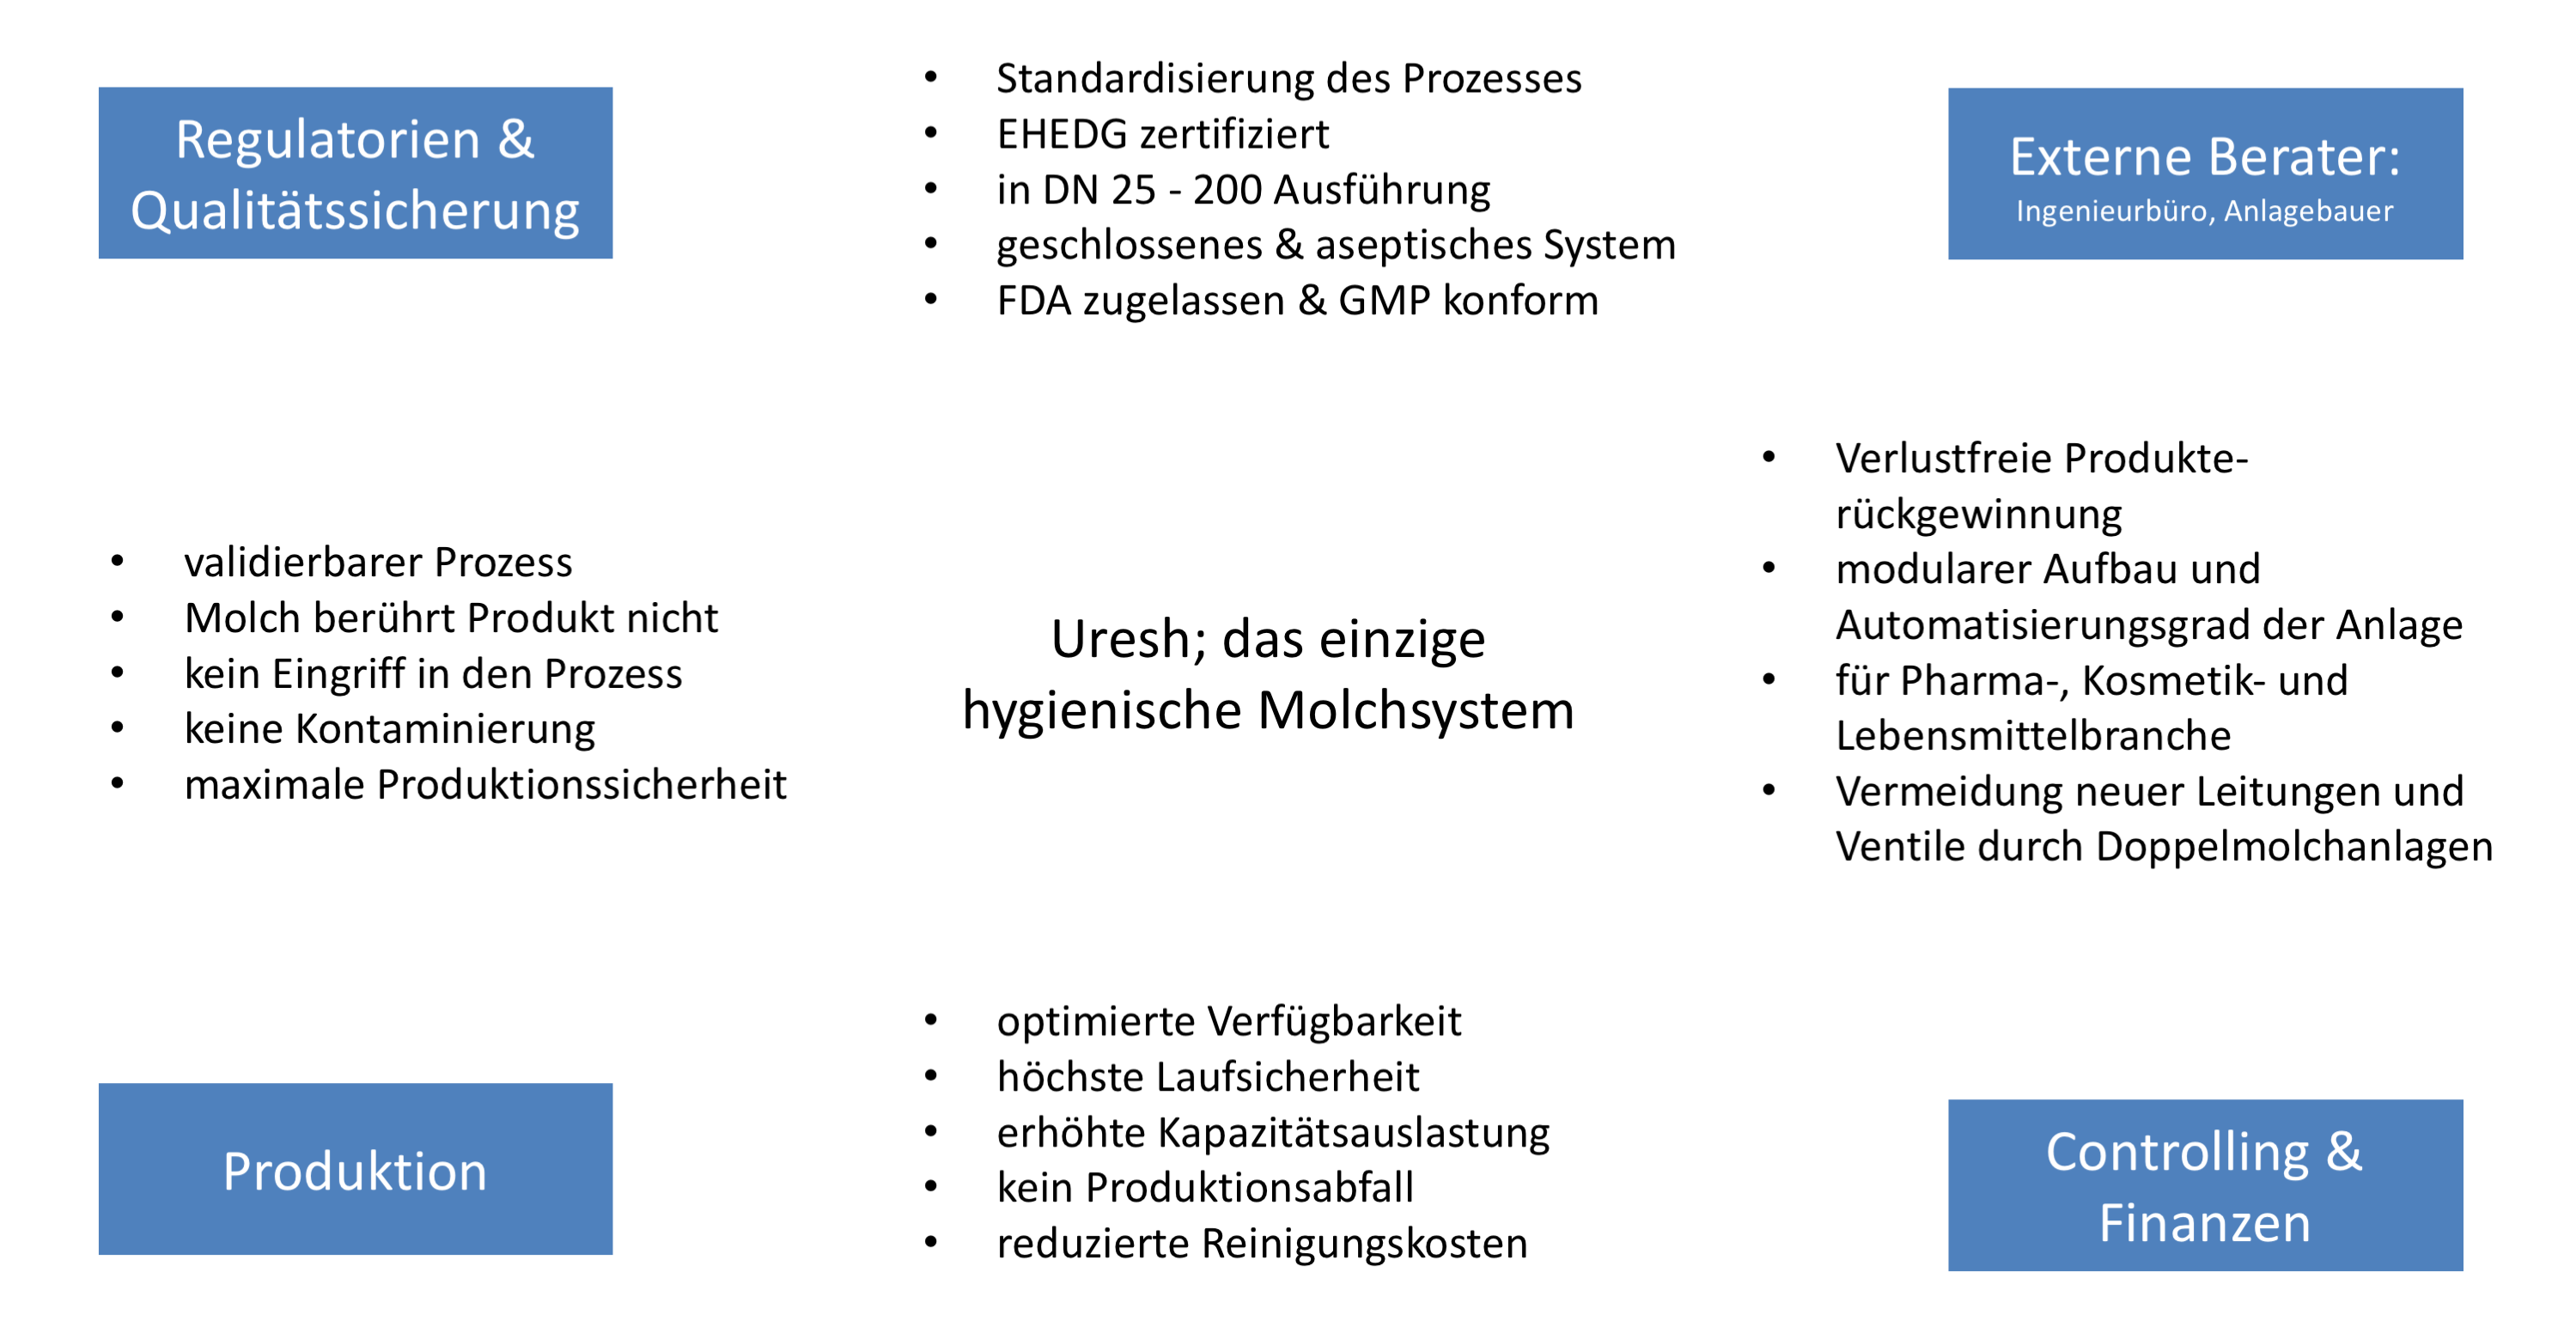 URESH Anprechsgruppen_web